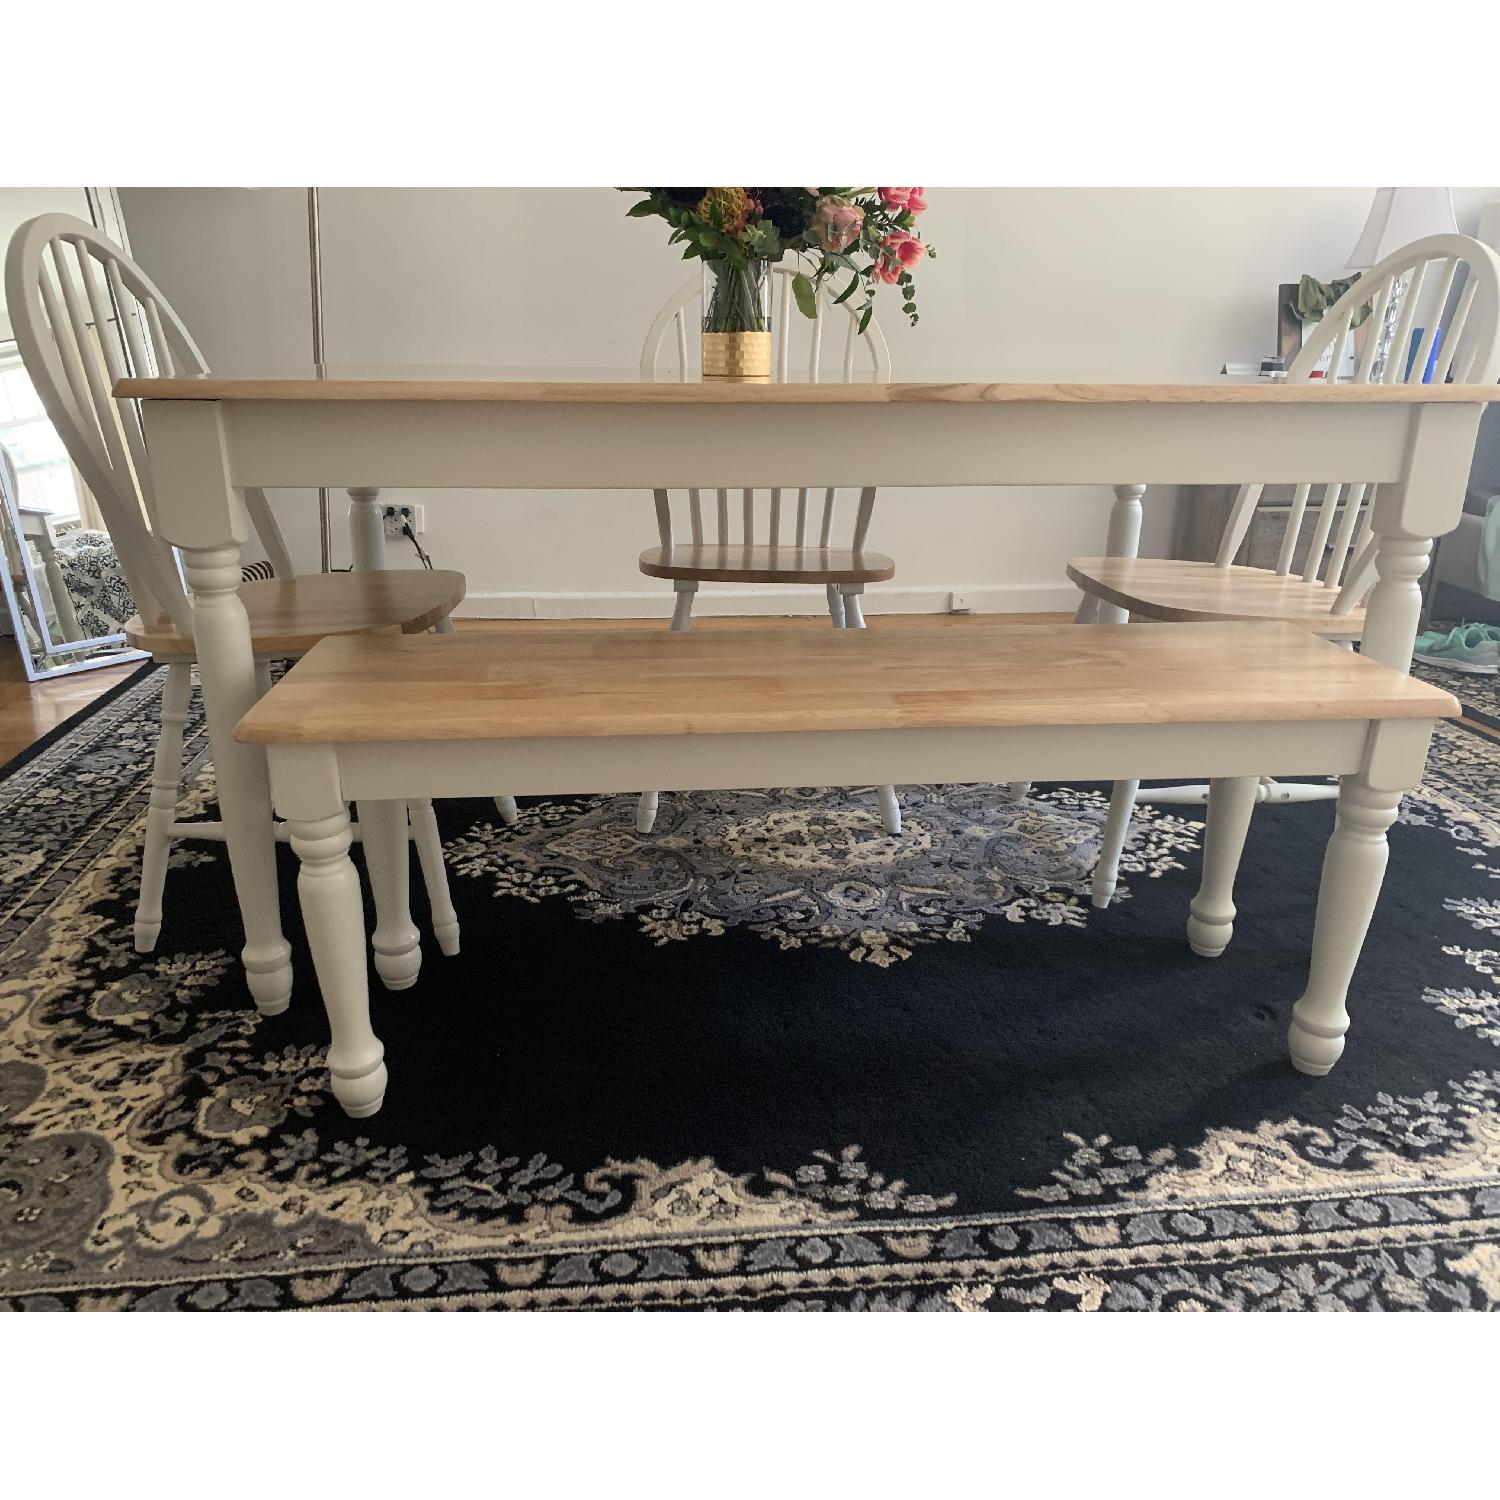 Better Homes & Gardens Dining Table w/ 1 Bench & 3 Chairs - image-1